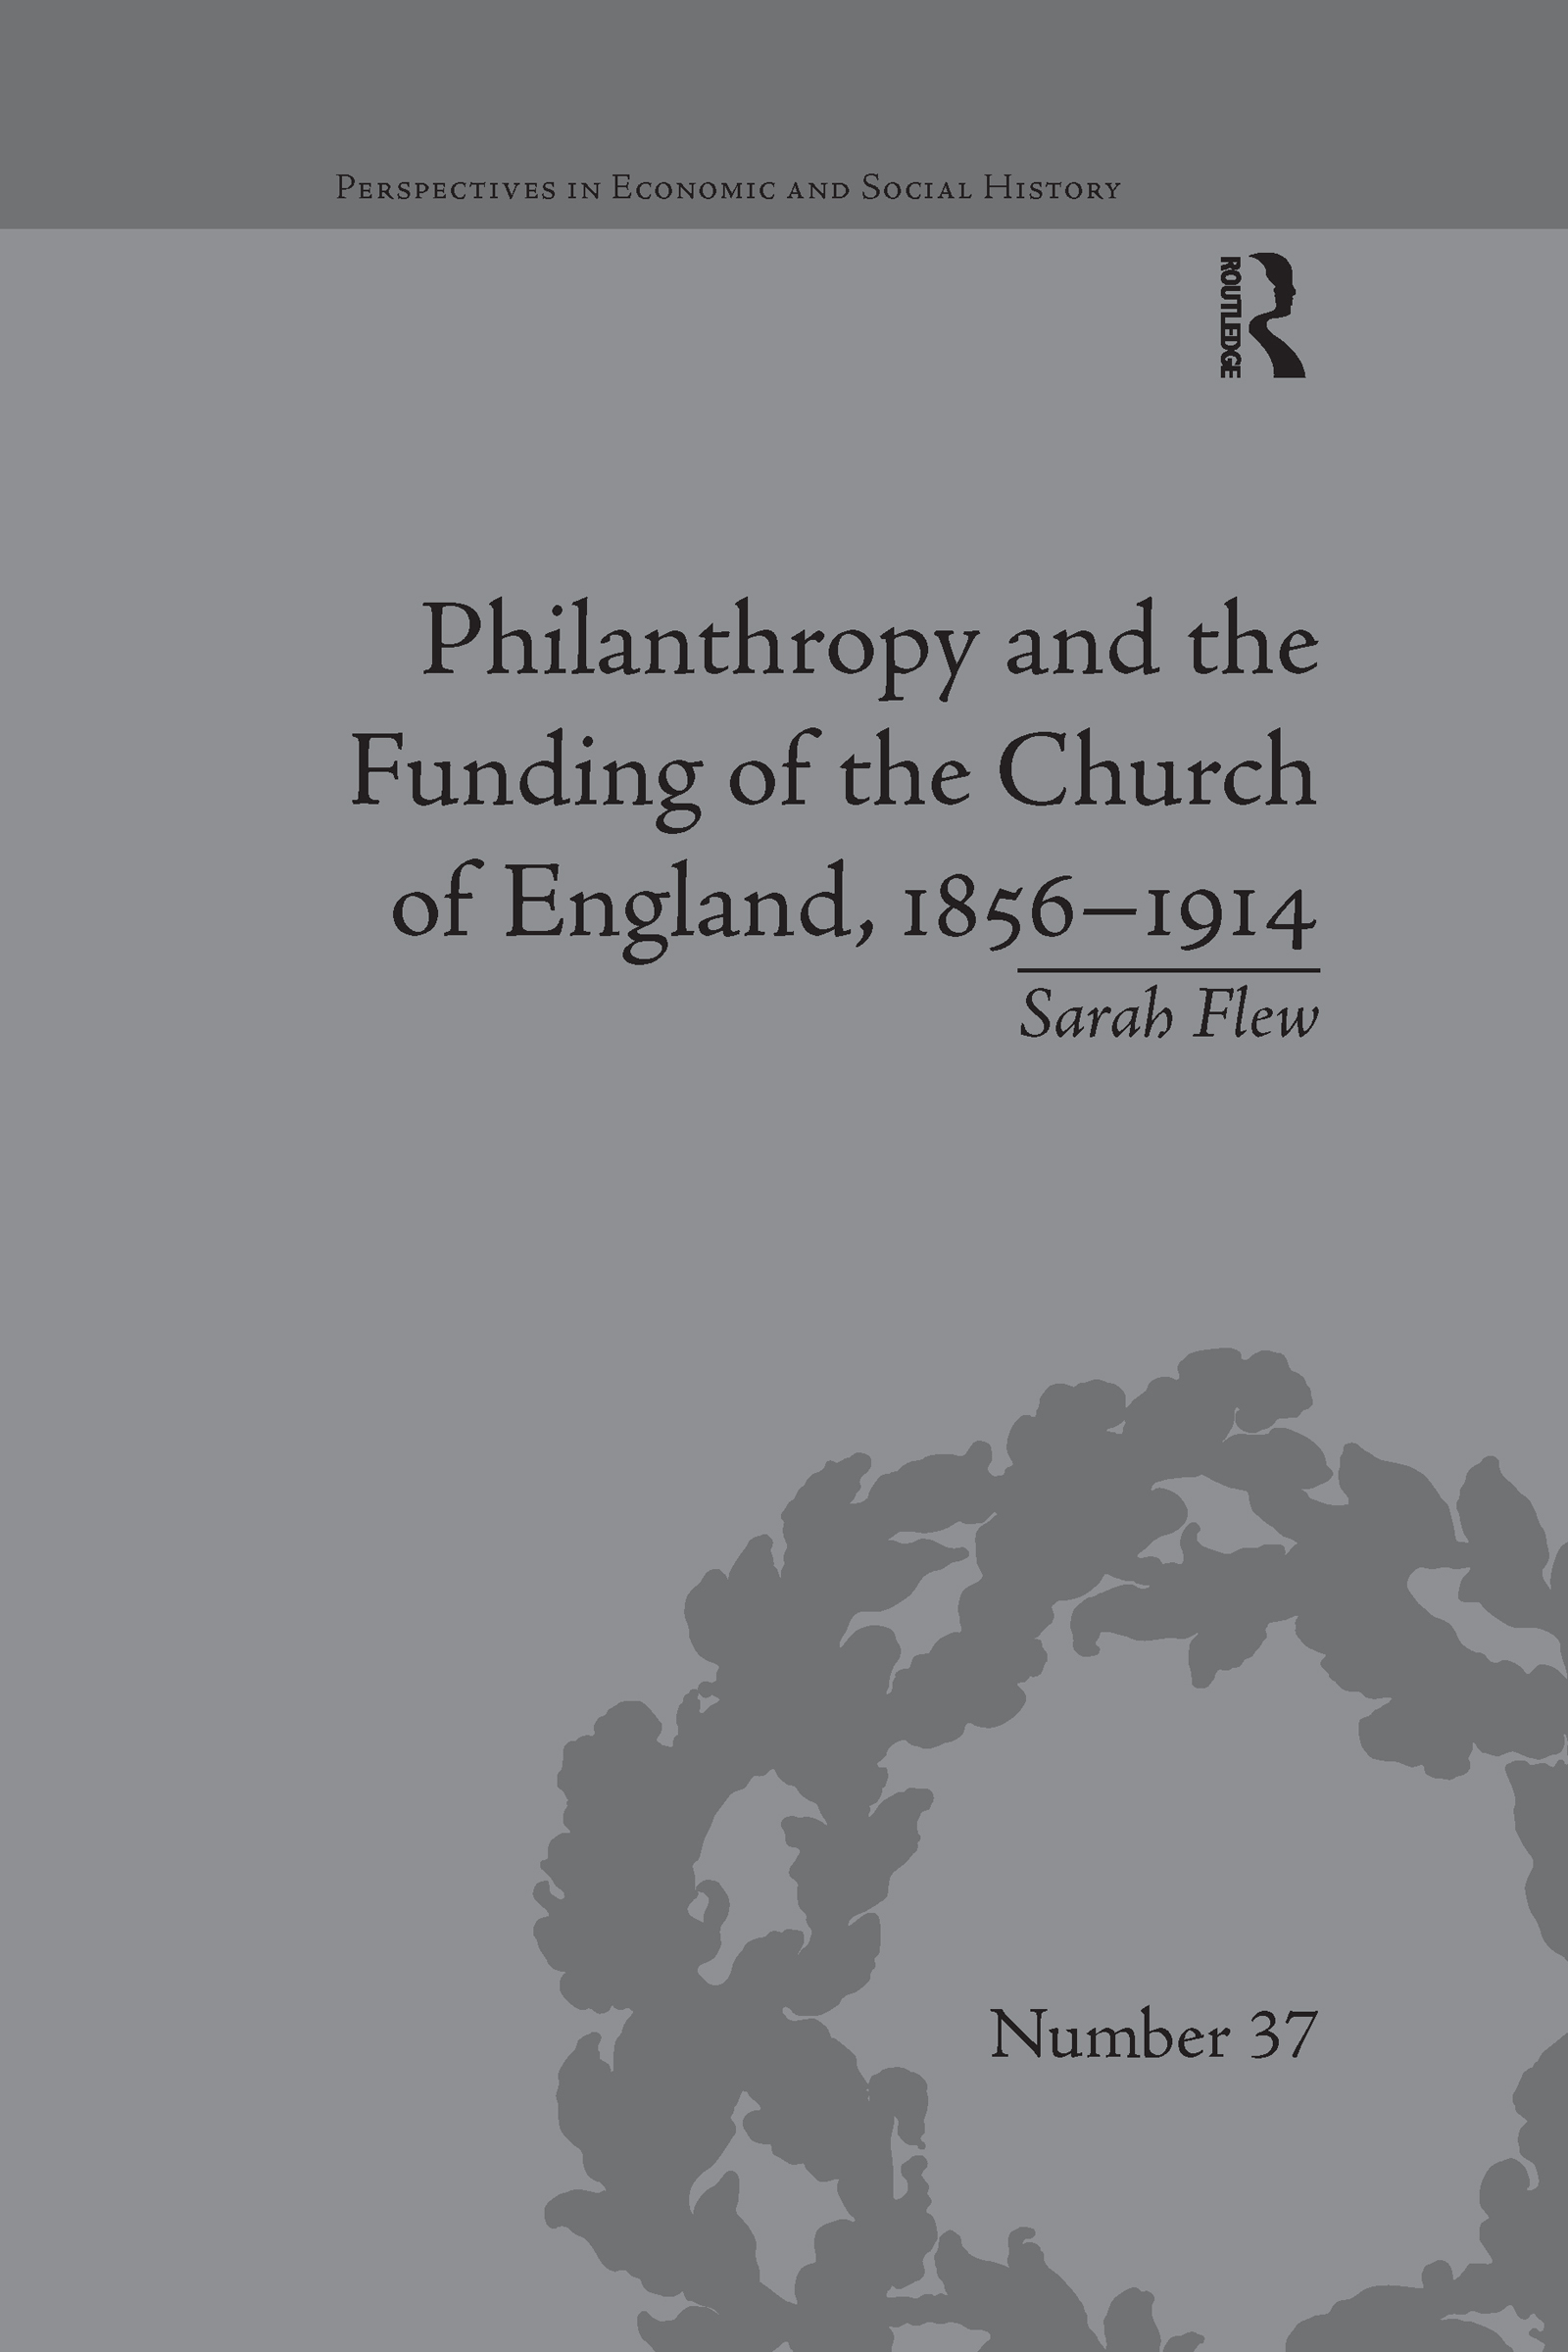 Philanthropy and the Funding of the Church of England, 1856–1914